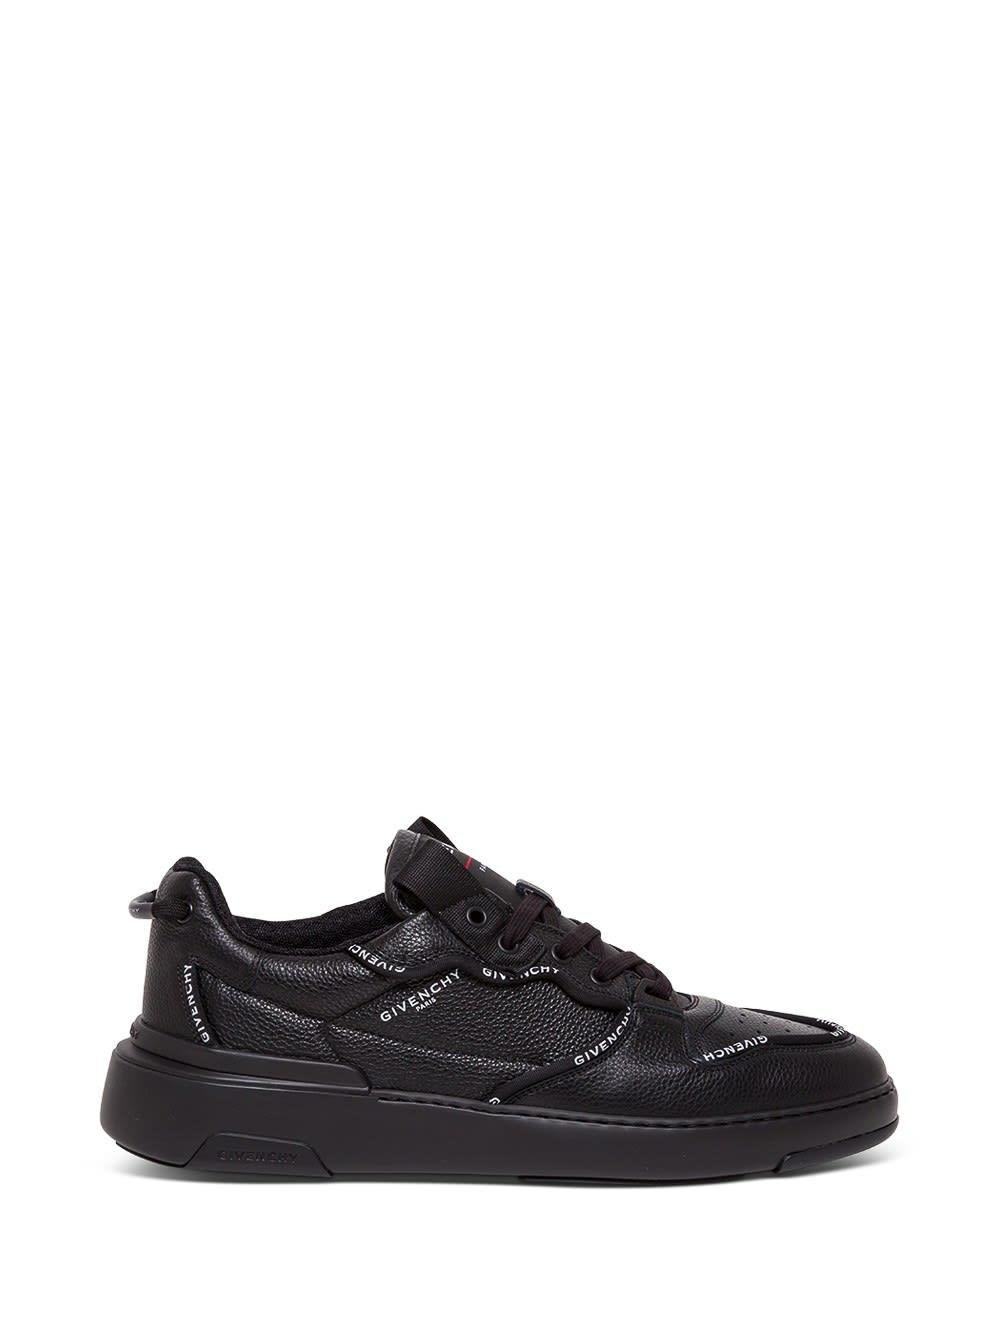 Givenchy Black Leather Sneakers With Contrasting Logo